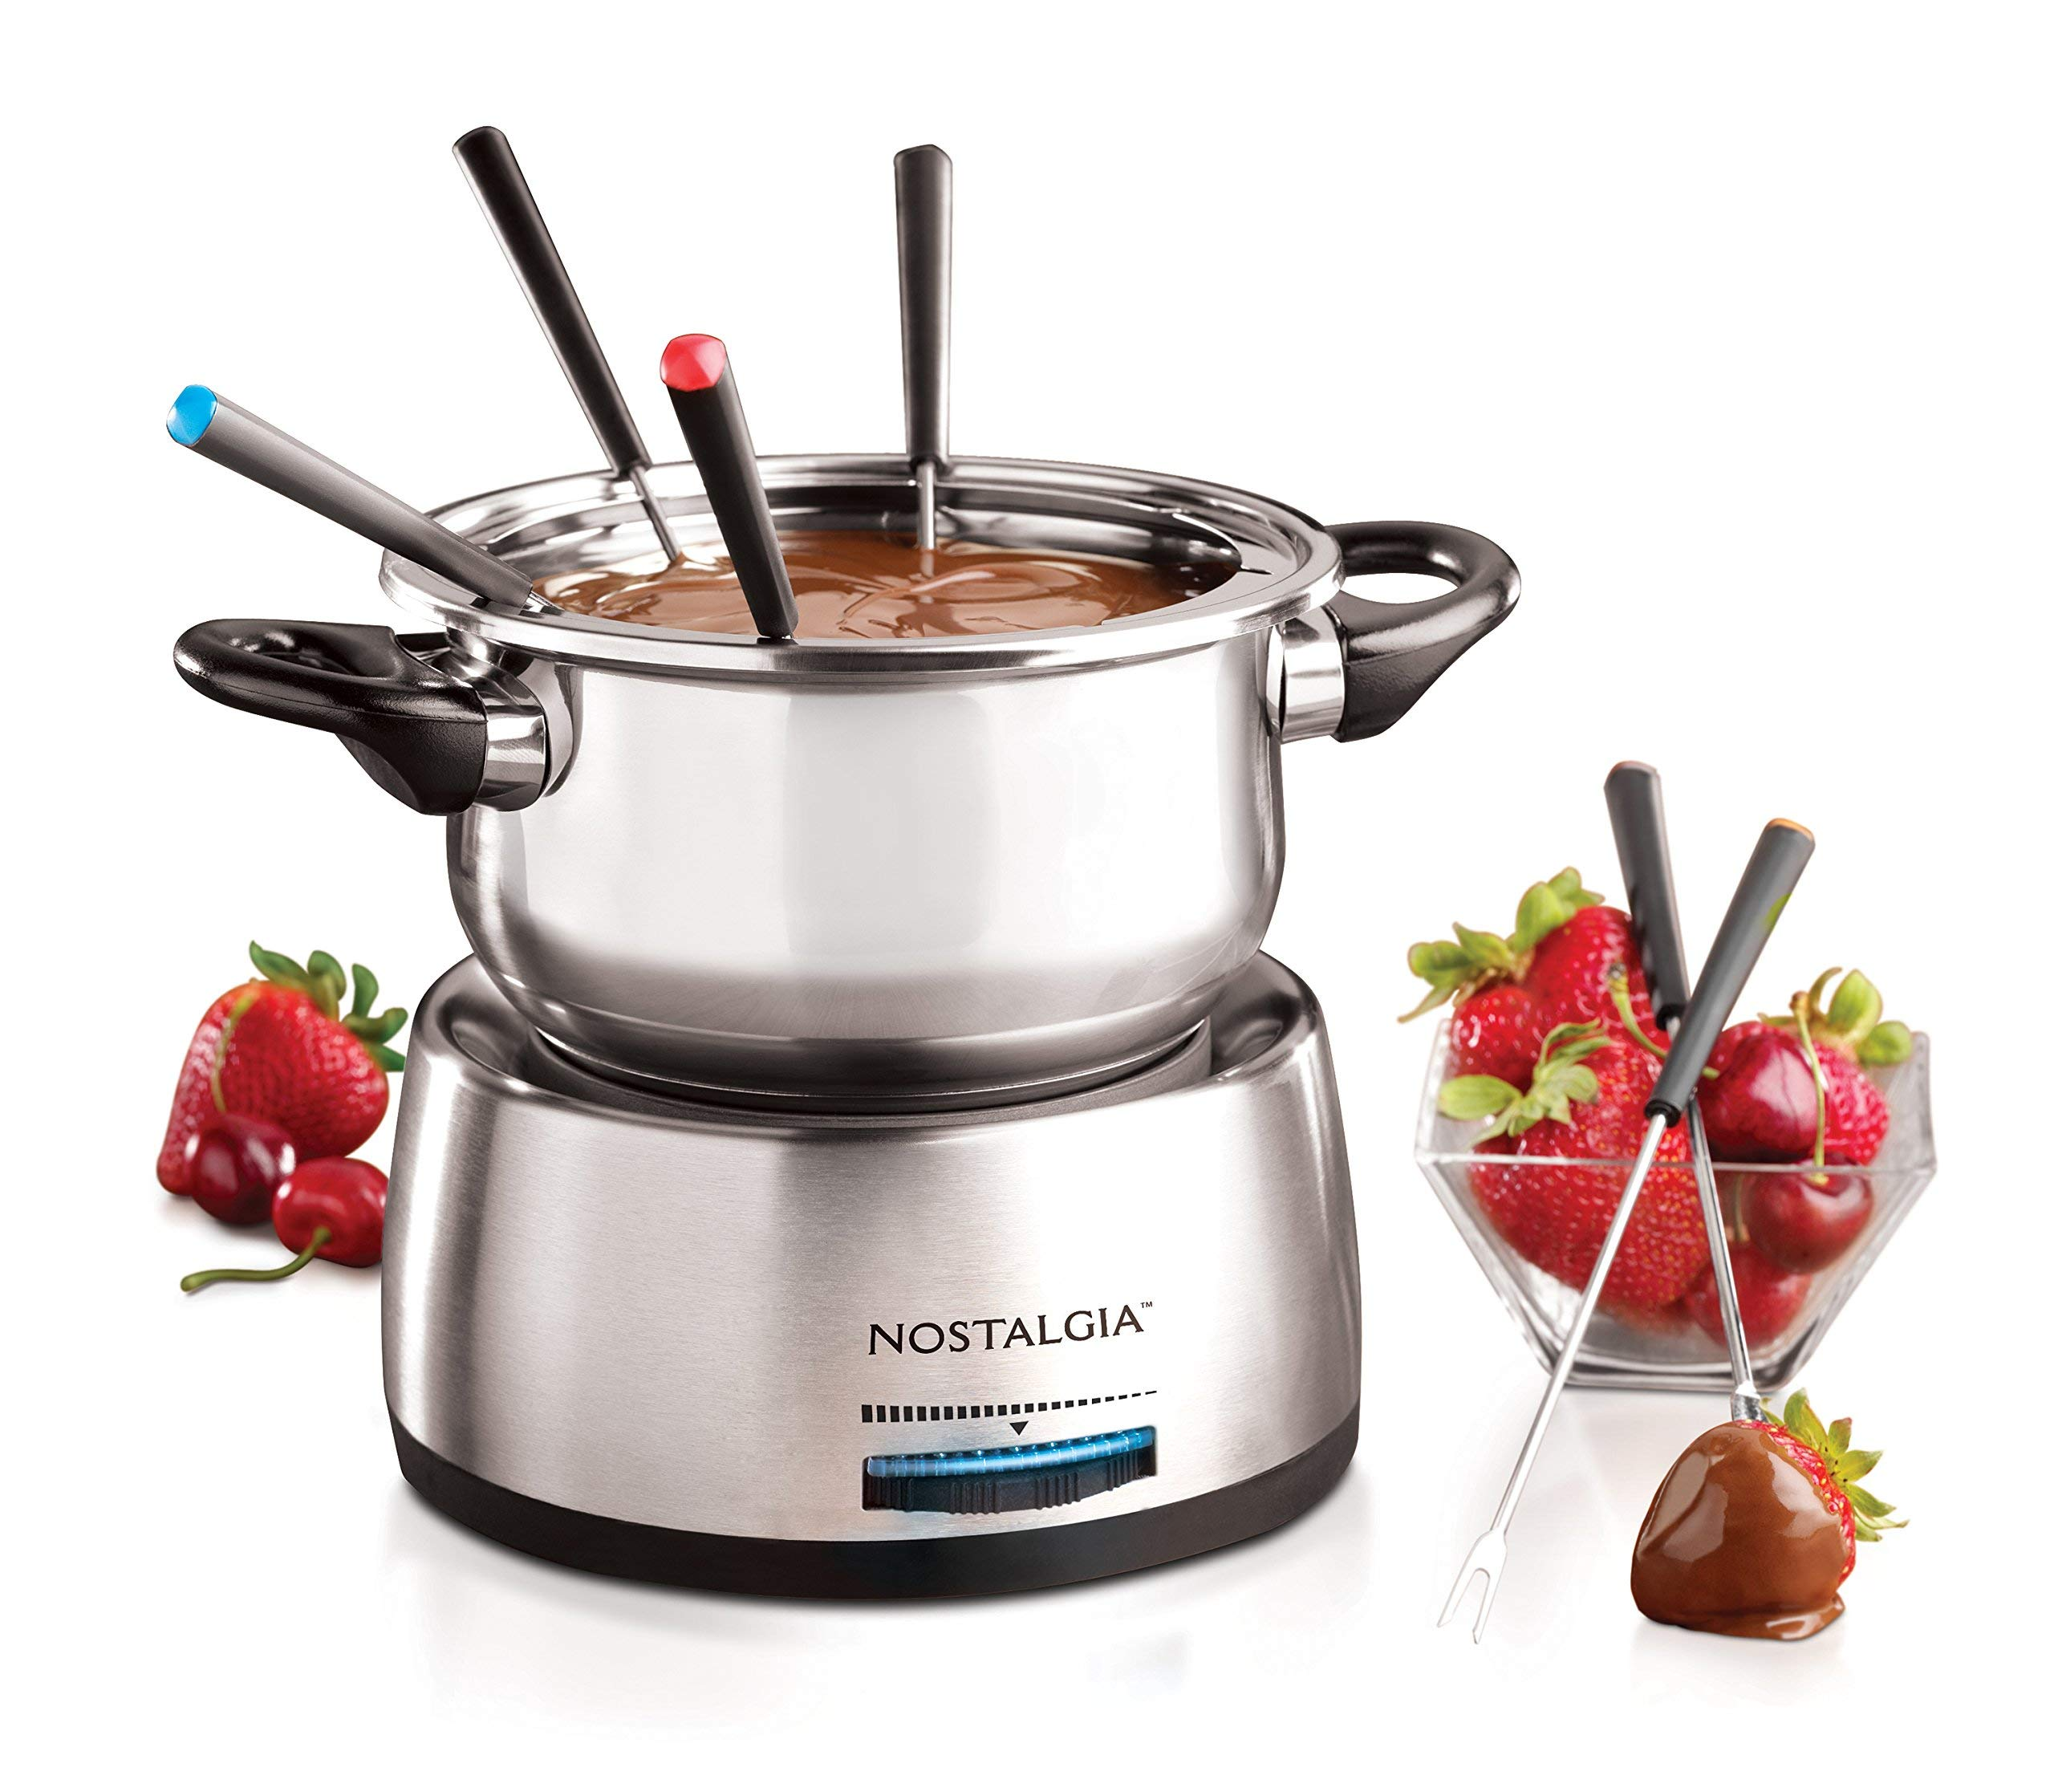 Nostalgia FPS200 6-Cup Stainless Steel Electric Fondue Pot (Renewed)